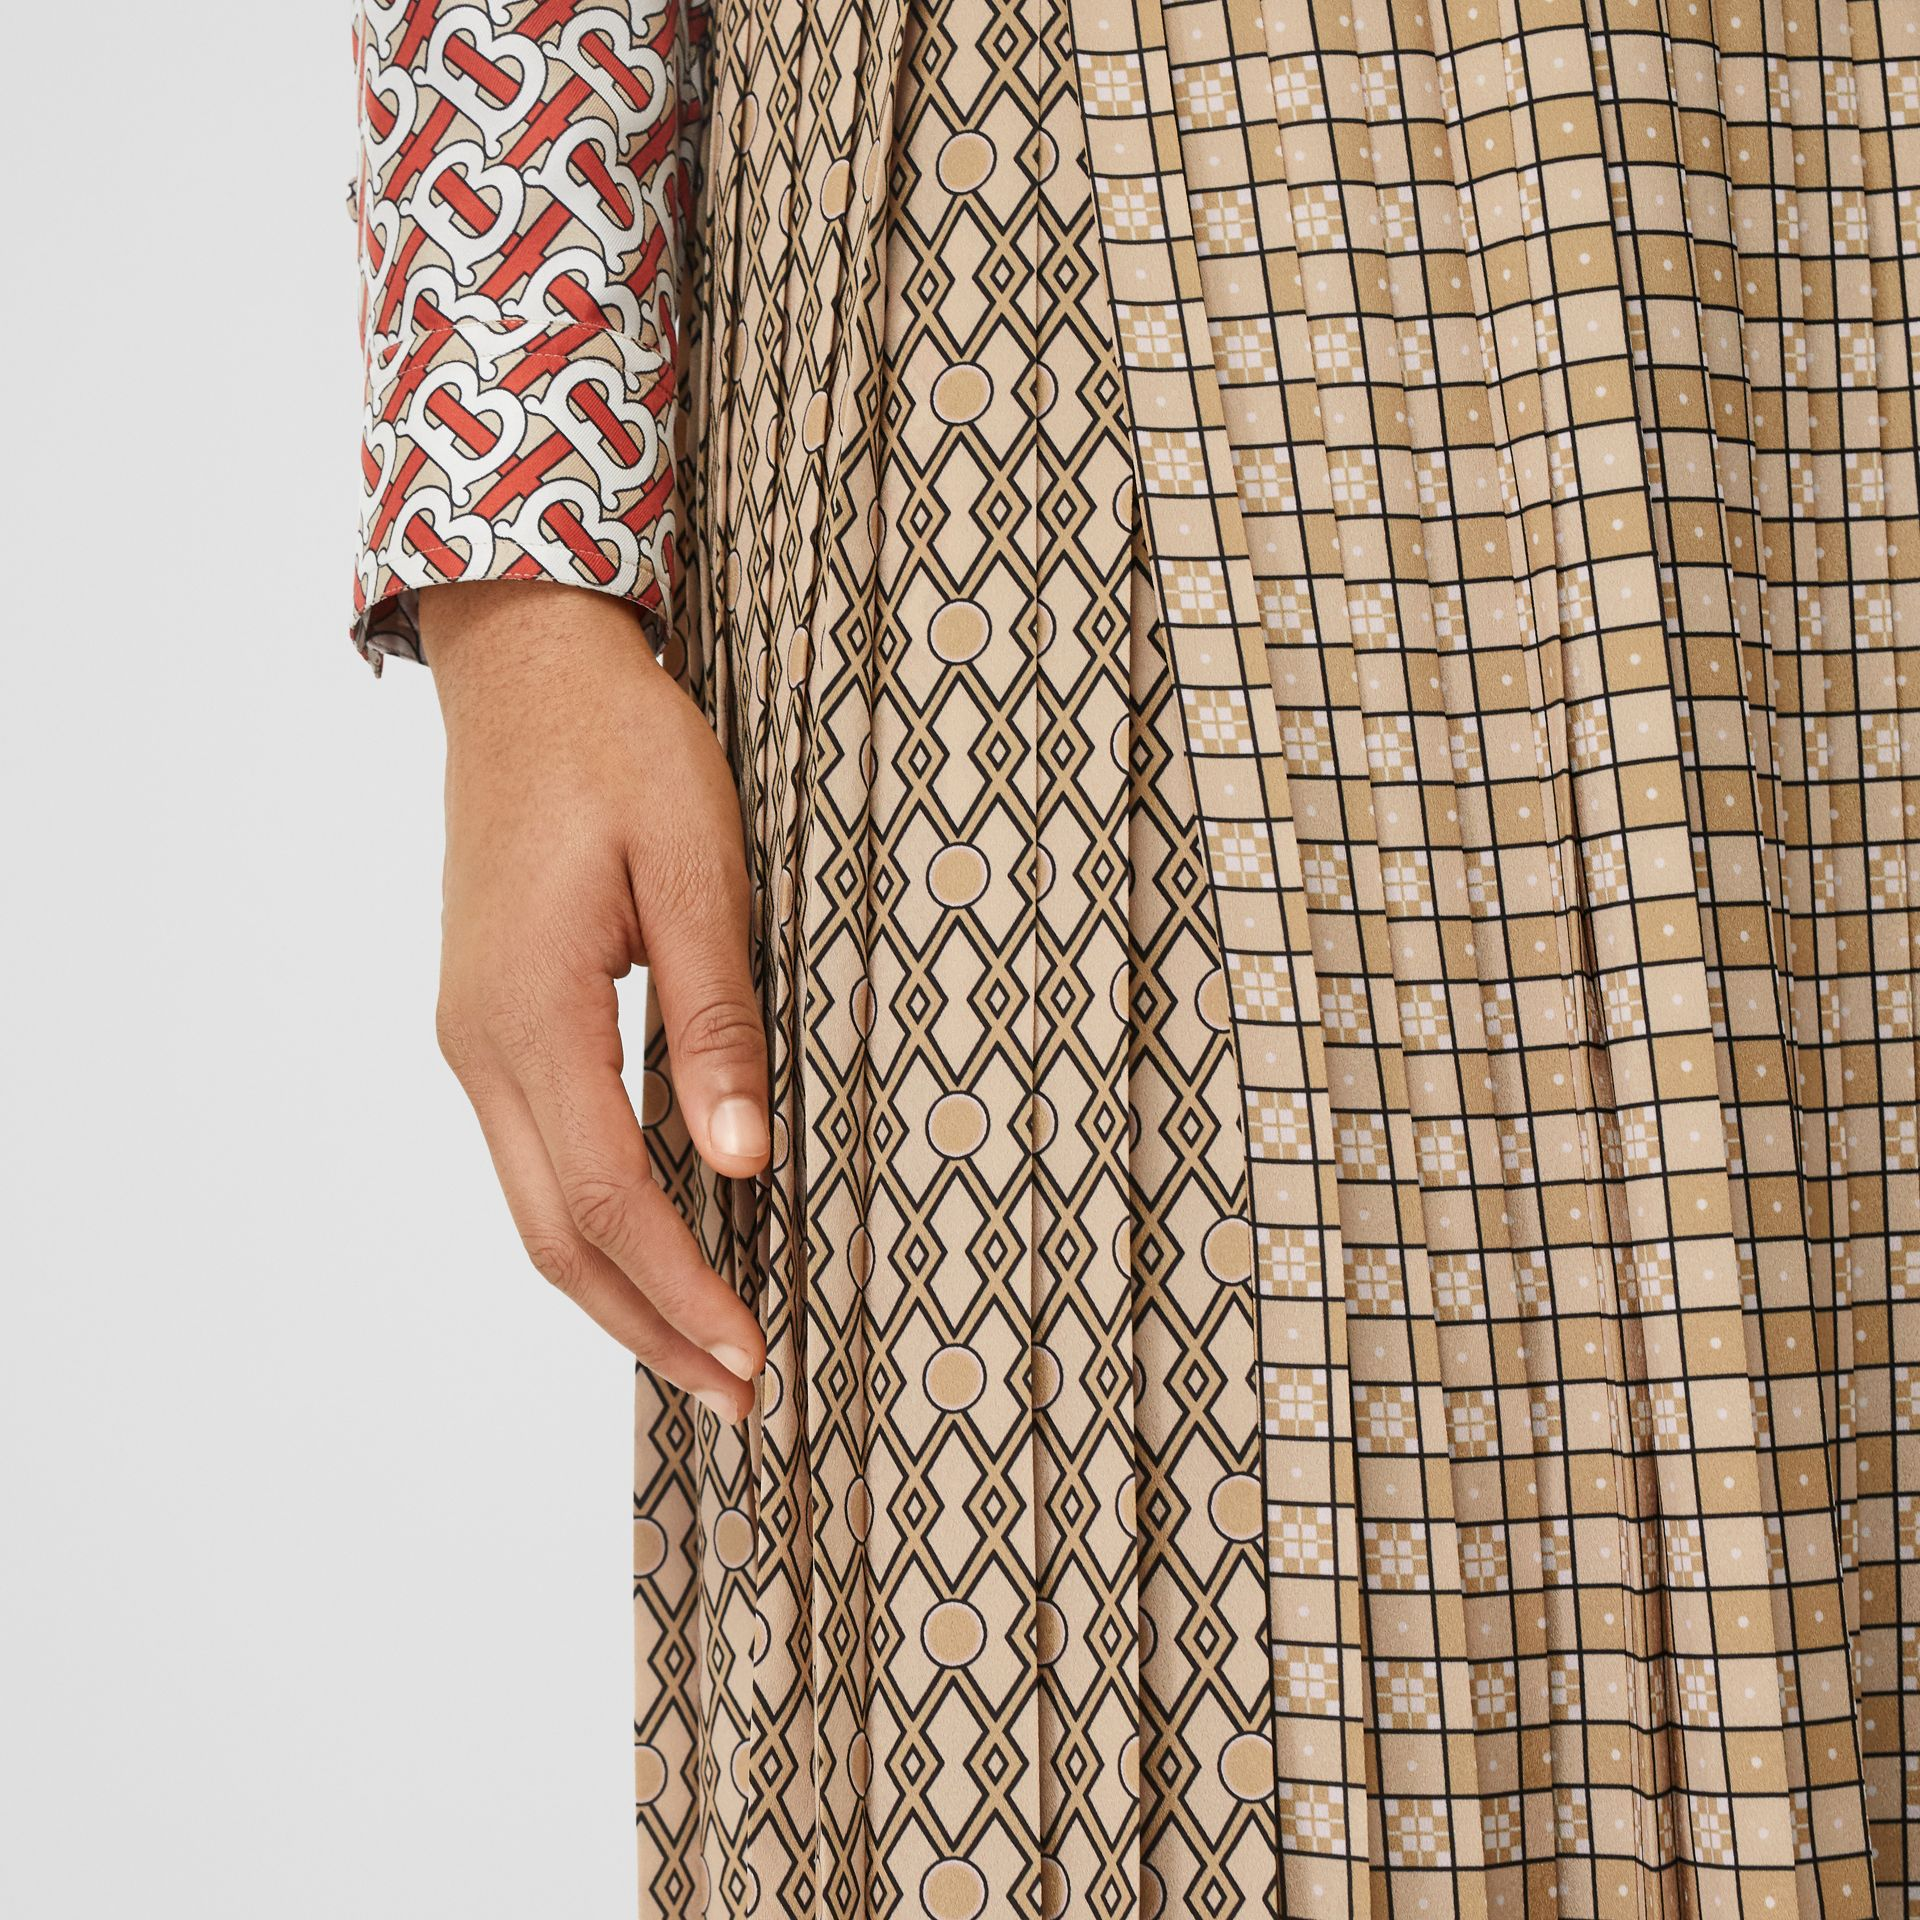 Contrast Graphic Print Pleated Skirt in Latte - Women | Burberry - gallery image 5